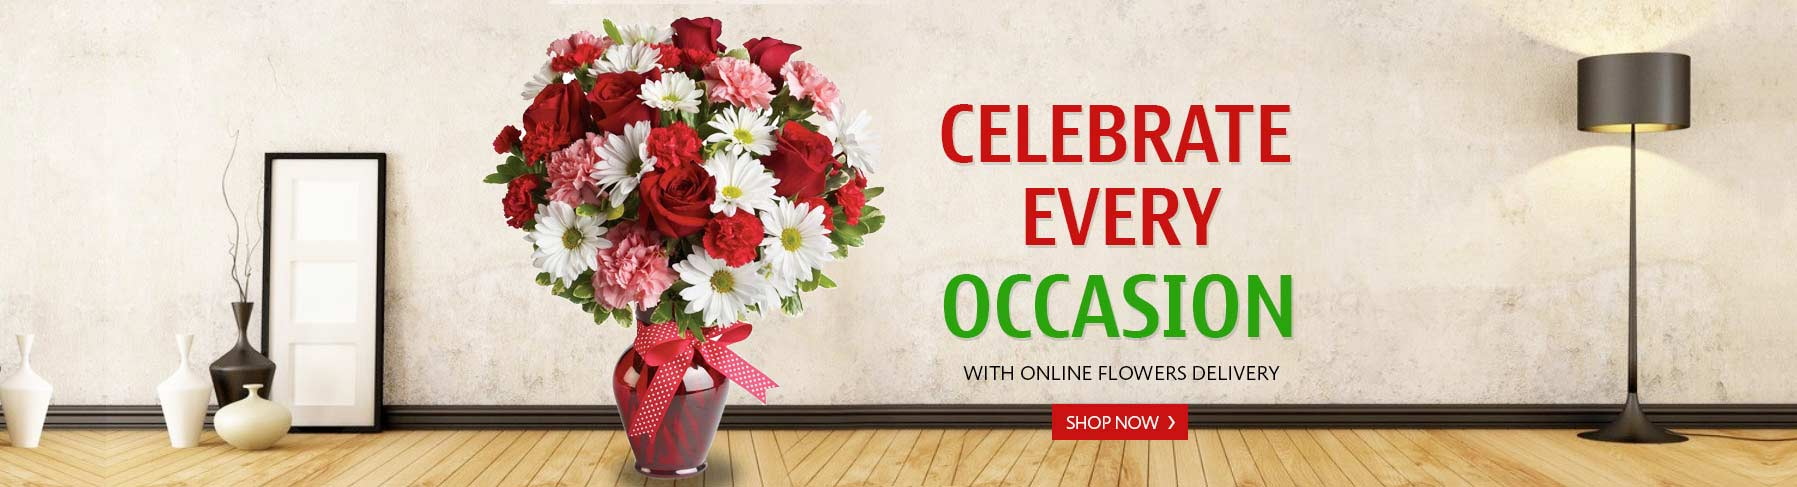 Flower delivery in dubai buysend flowers to uae wedding flowers birthday flowers flower bouquets izmirmasajfo